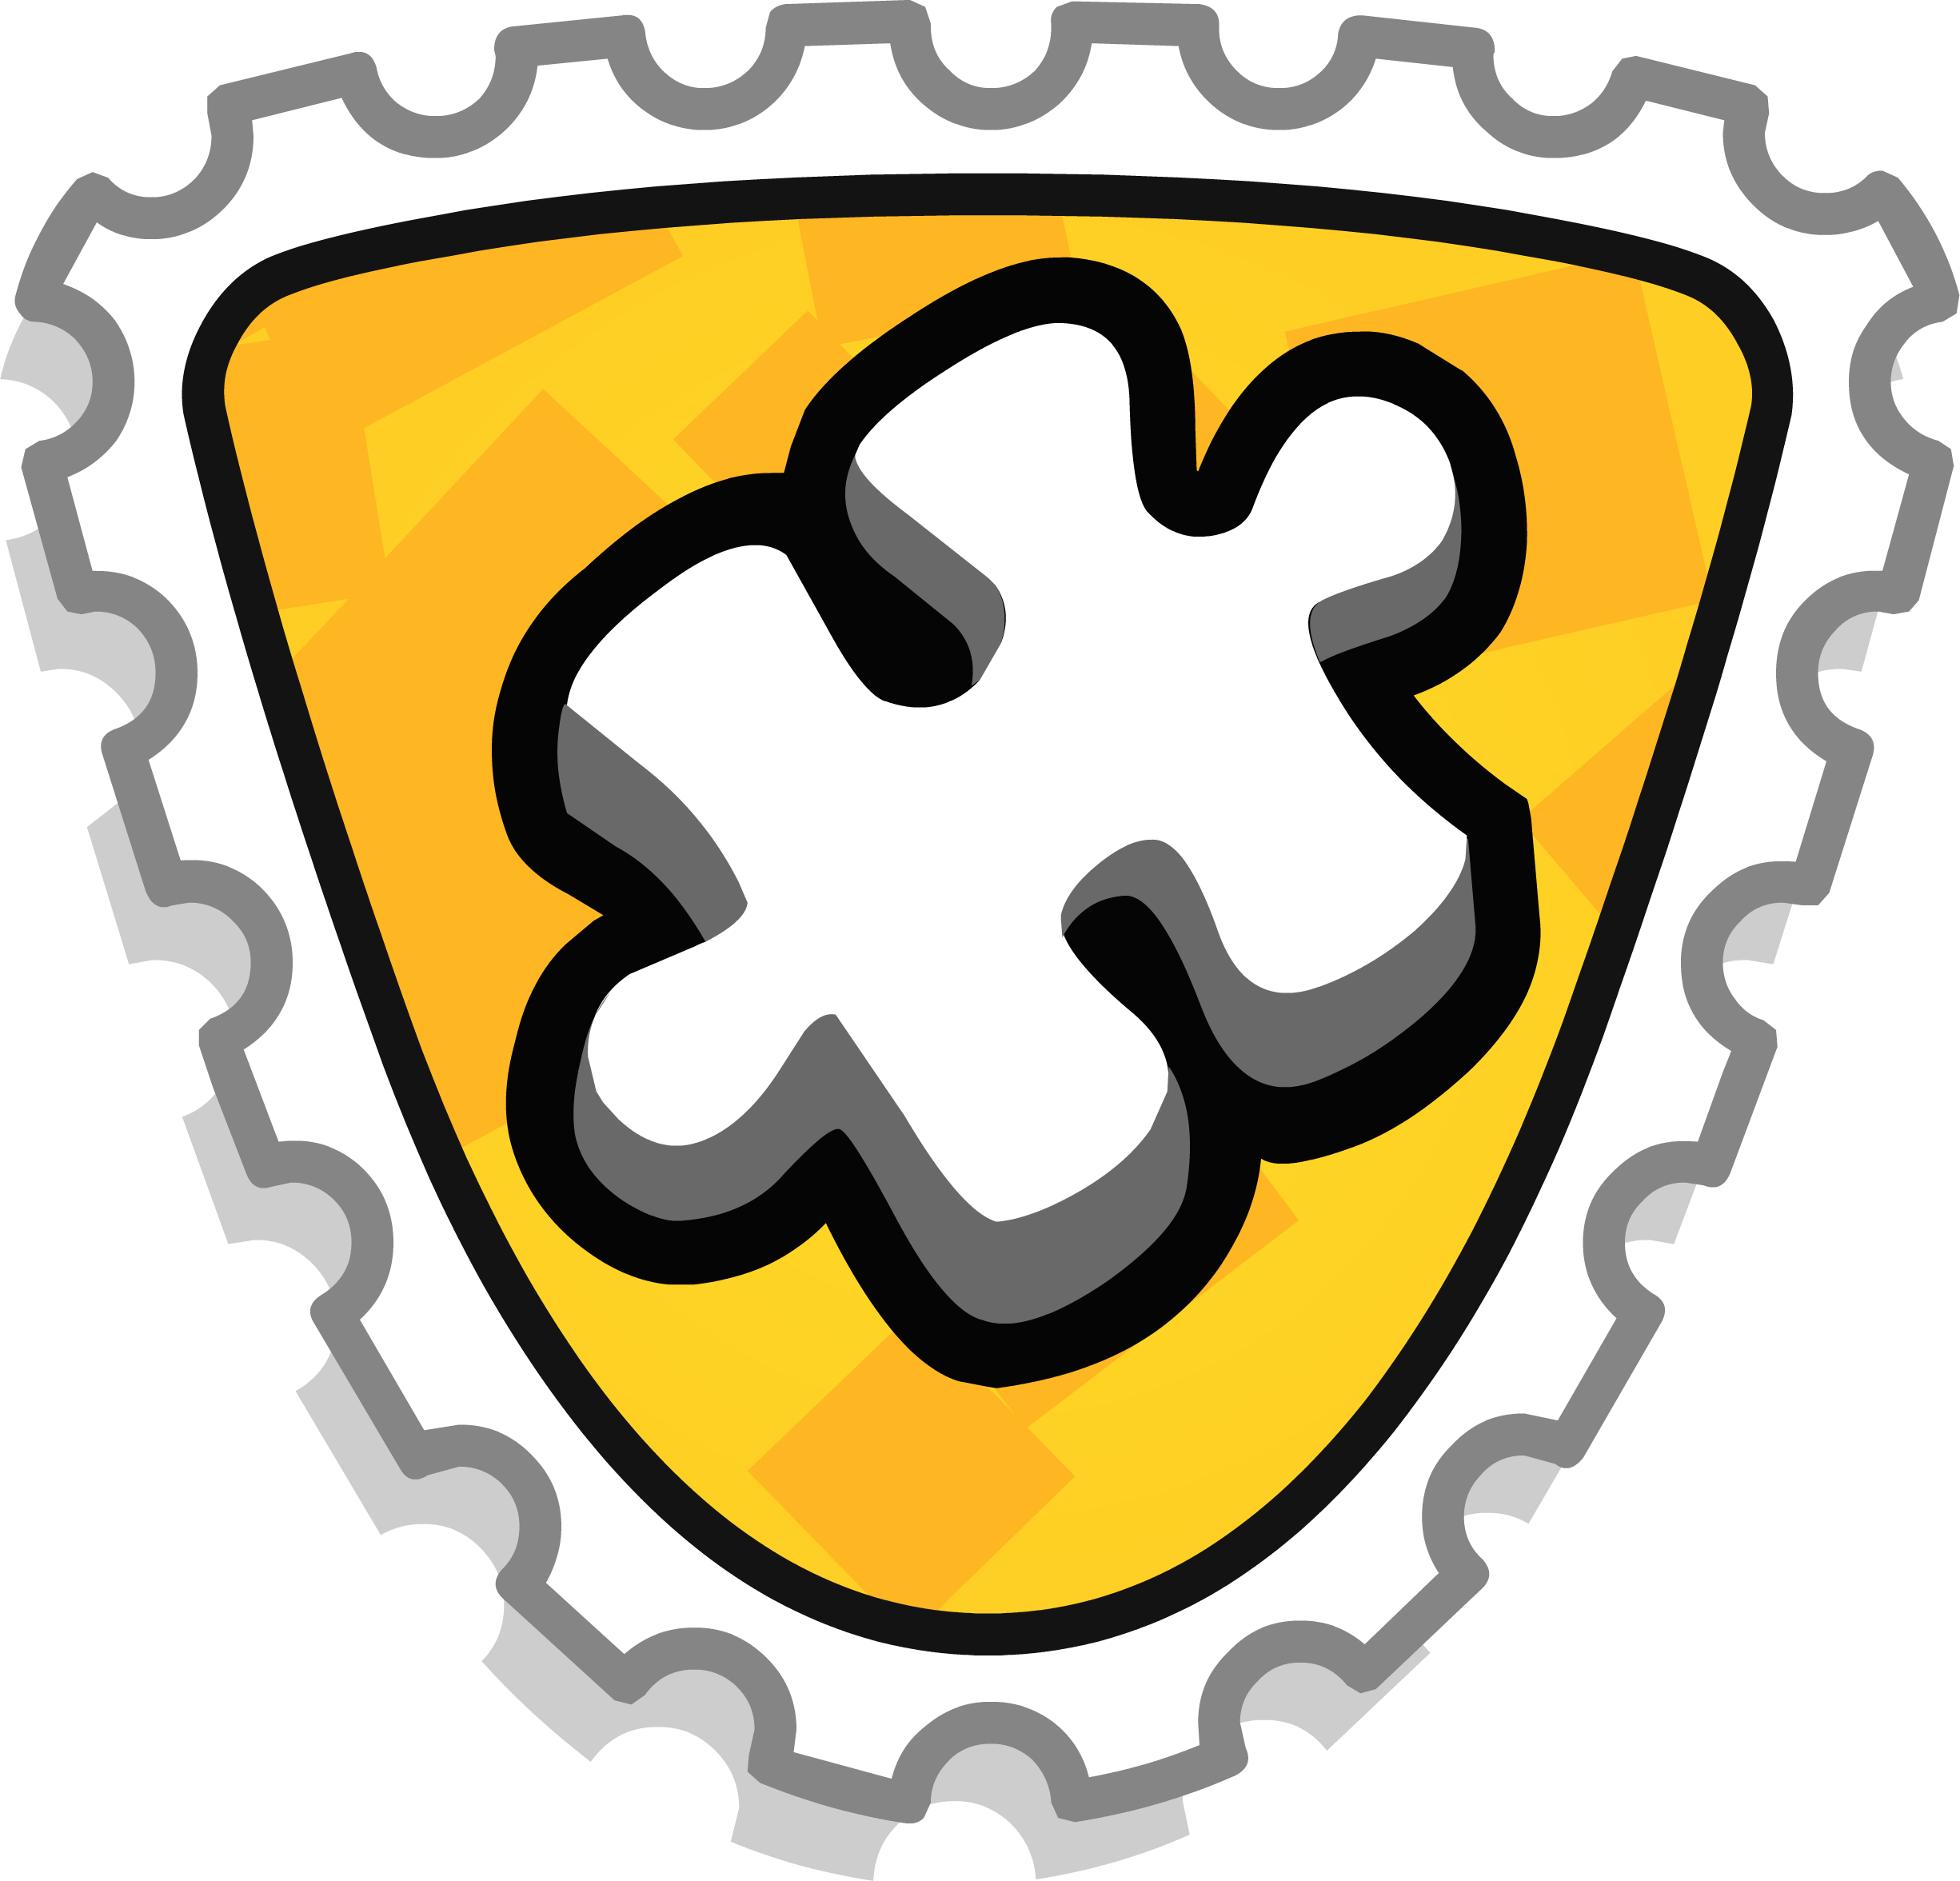 File:PartyPuzzle.png